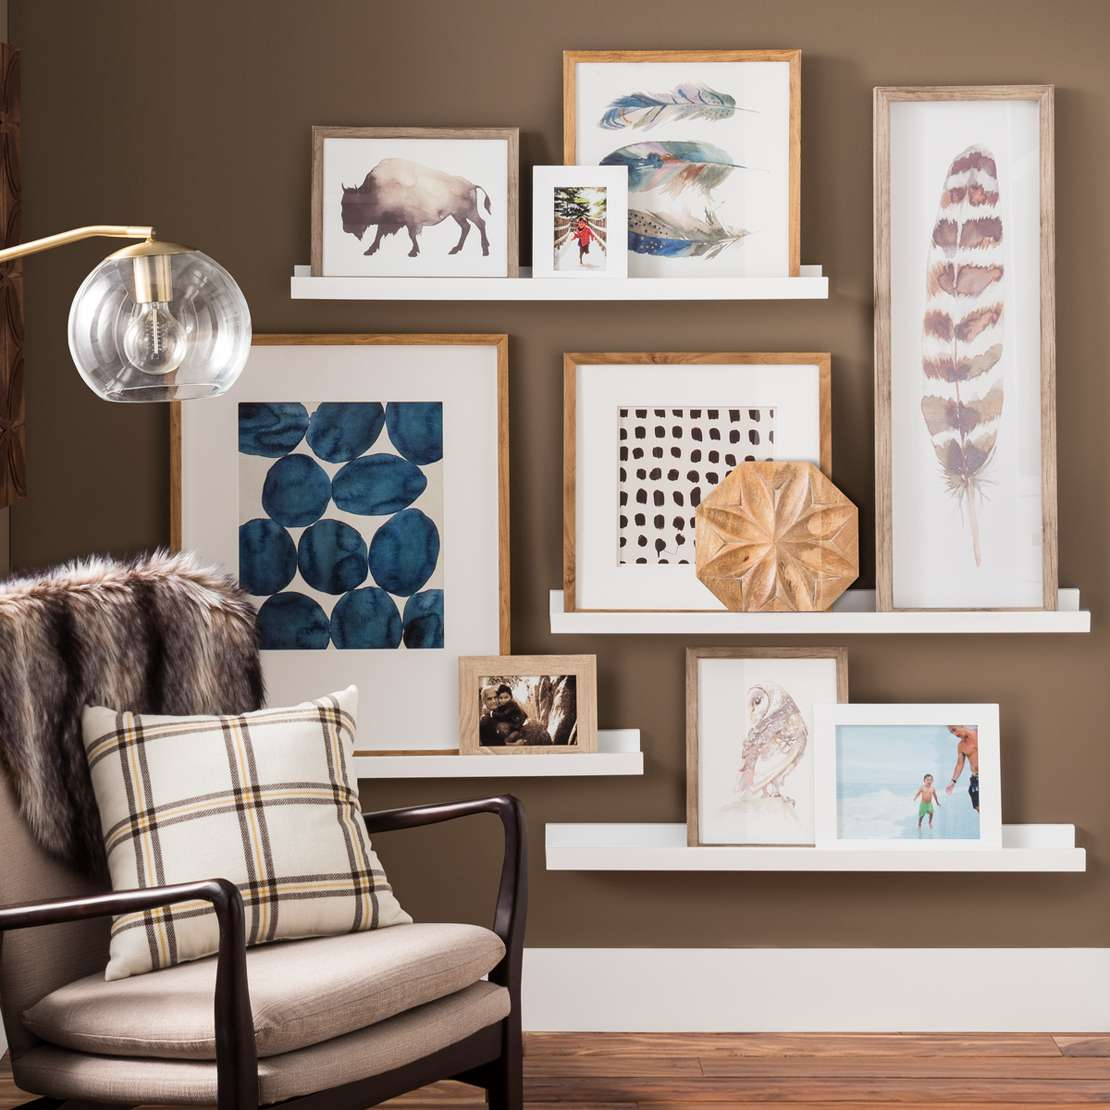 Wall Gallery Ideas Target